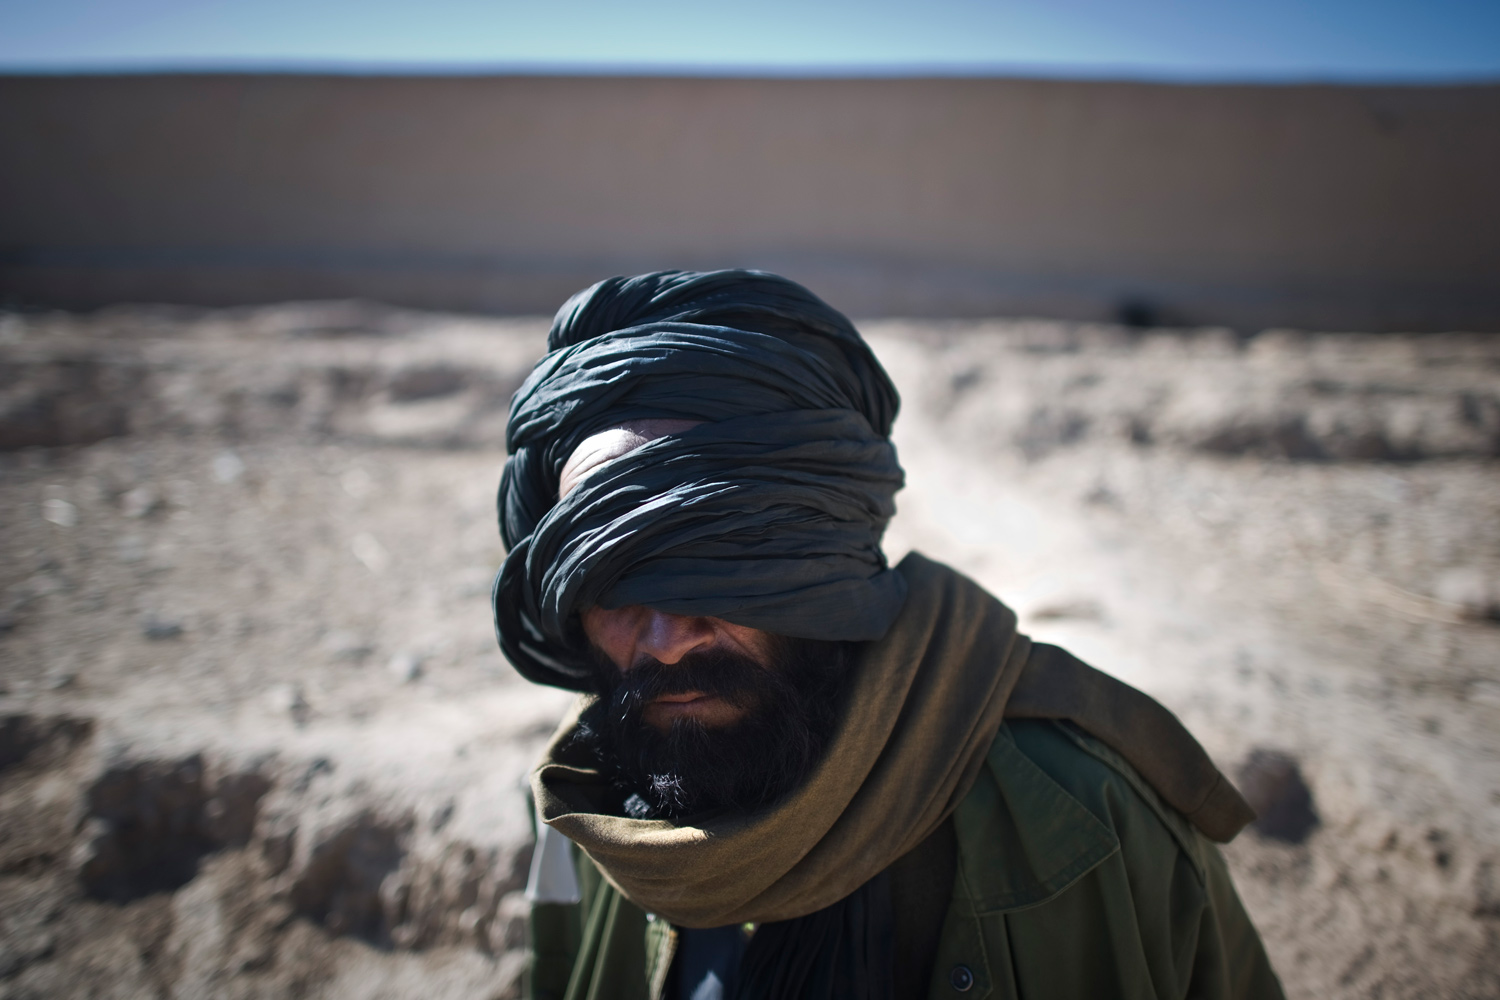 January 23, 2011. An Afghan detainee sits while guarded by U.S. Marines from 1st Battalion 8th, Bravo during an operation in Musa Qala district of Helmand province in Afghanistan.